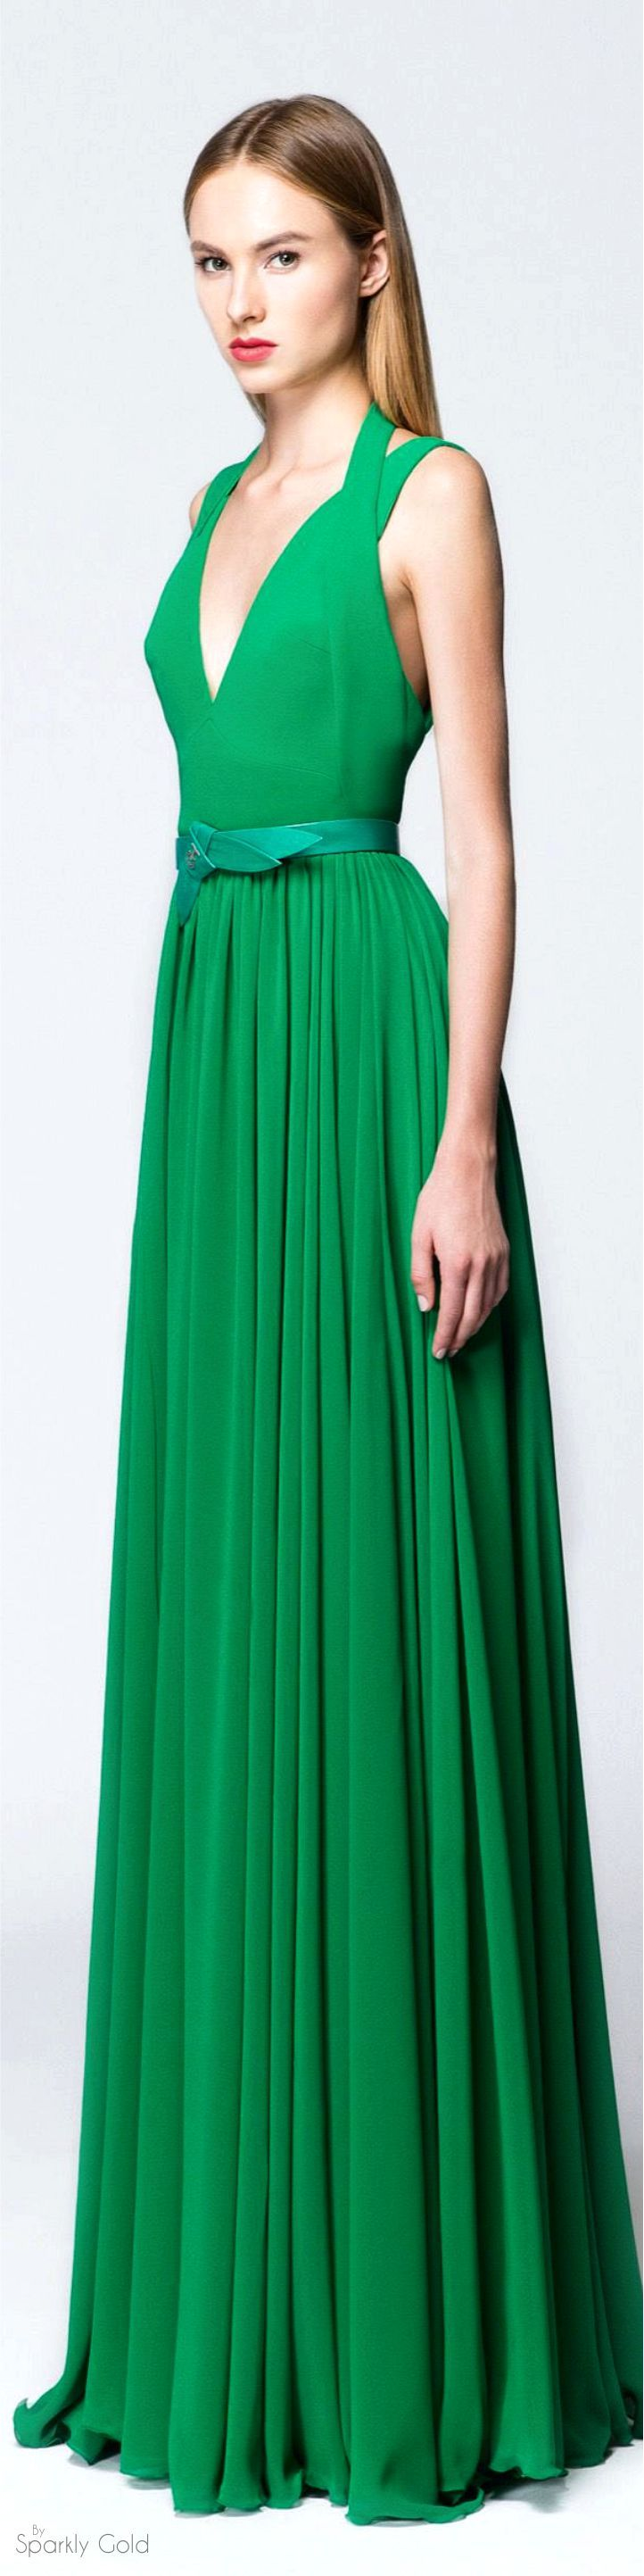 GH by Georges Hobeika Spring 2016 RTW green maxi dress women fashion outfit clothing style apparel @roressclothes closet ideas